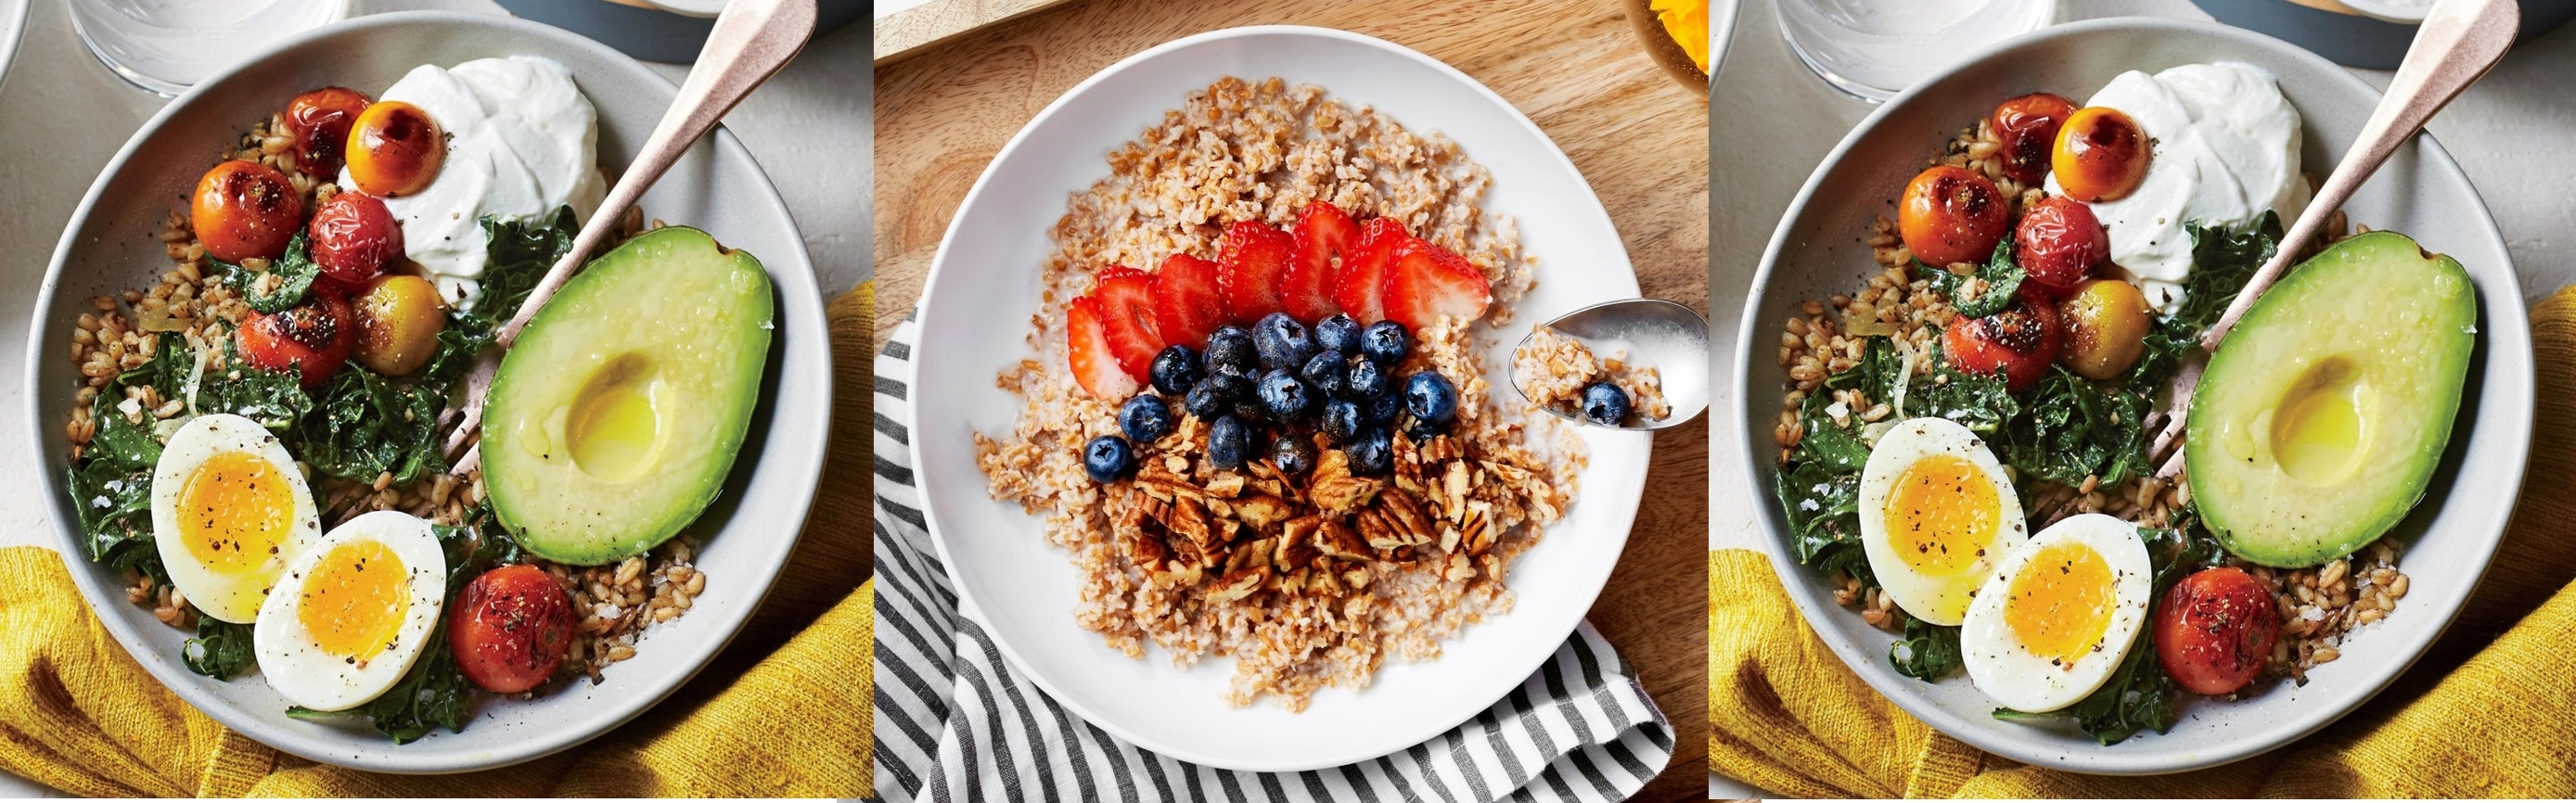 To Breakfast or Not? – Weight Loss No. 4